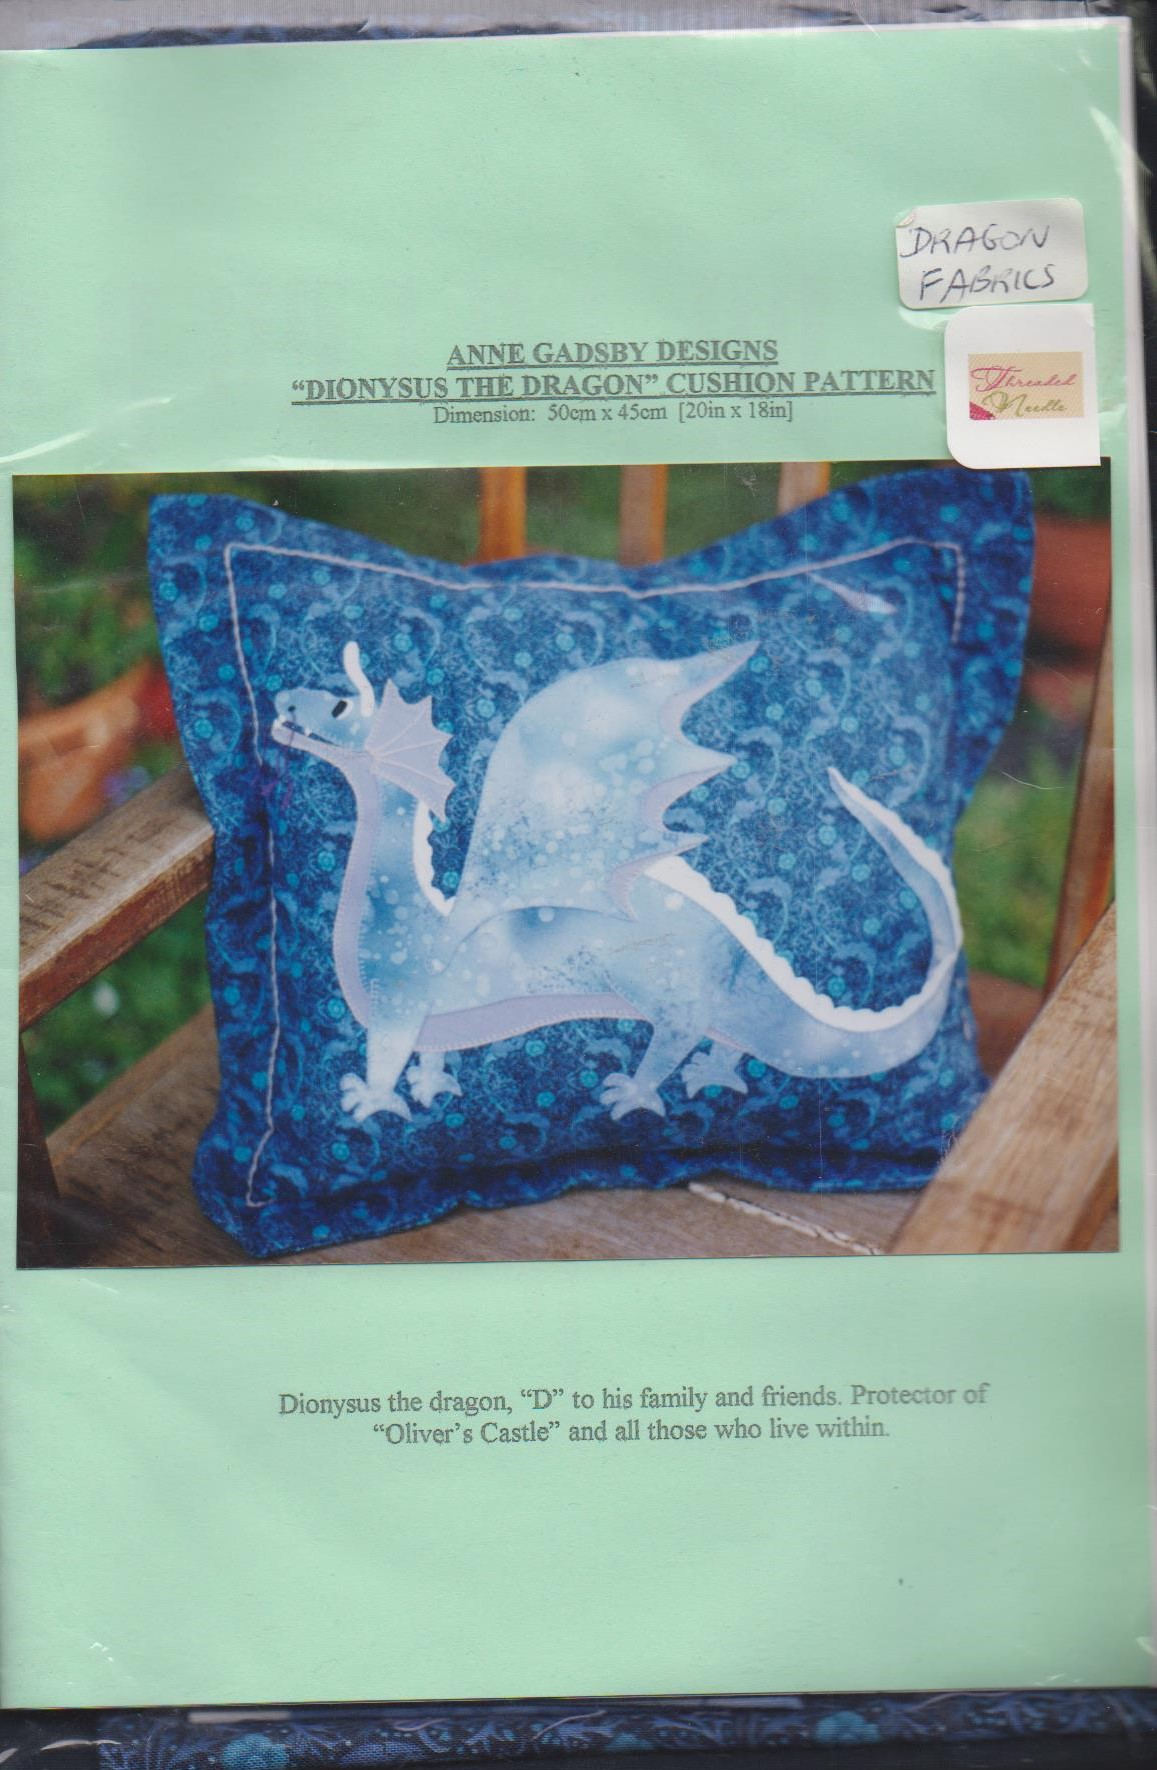 Dionysus the Dragon - Cushion Pattern with fabrics by Anne  Gadsby